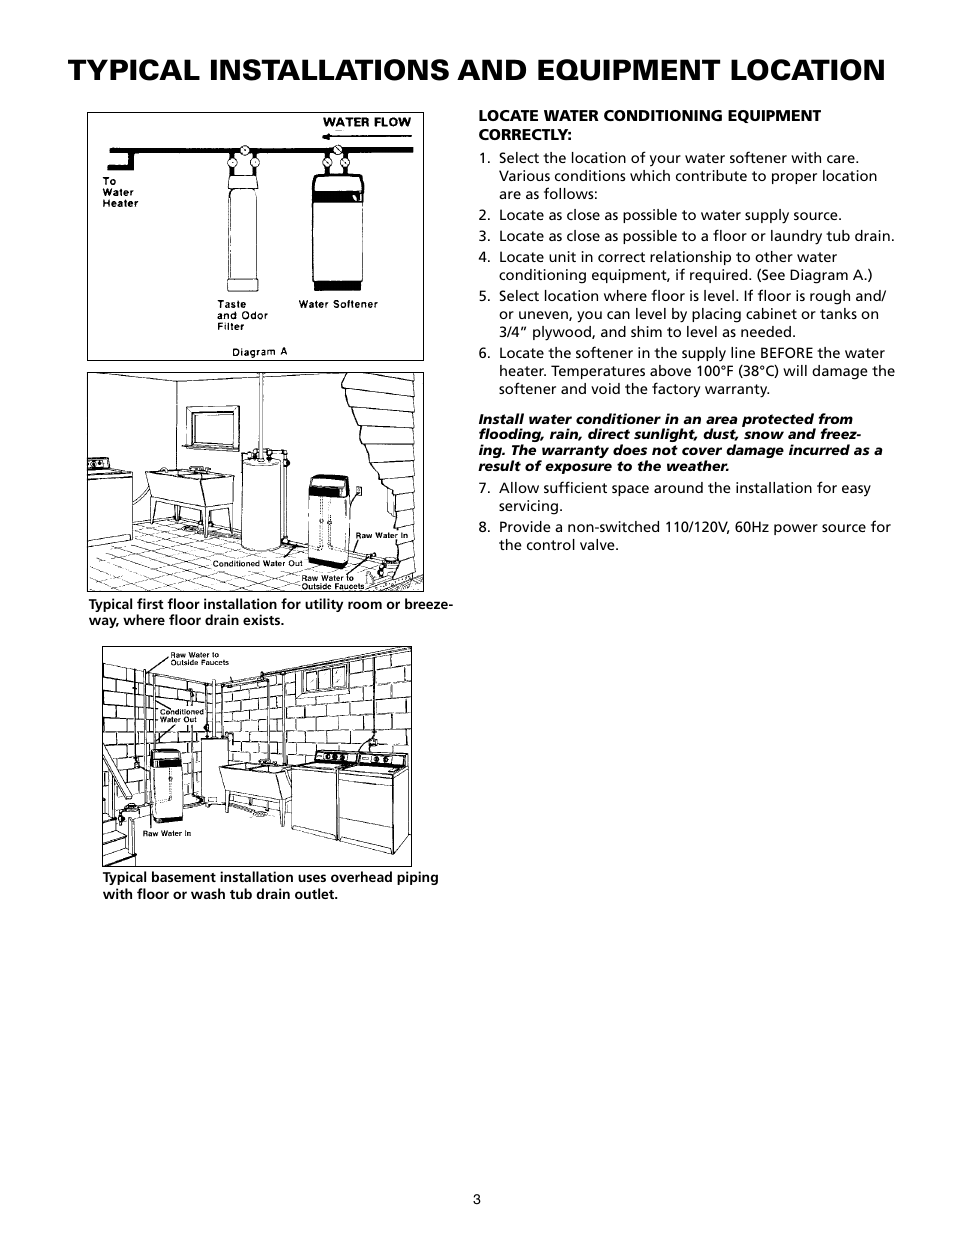 medium resolution of typical installations and equipment location star water systems water softener user manual page 3